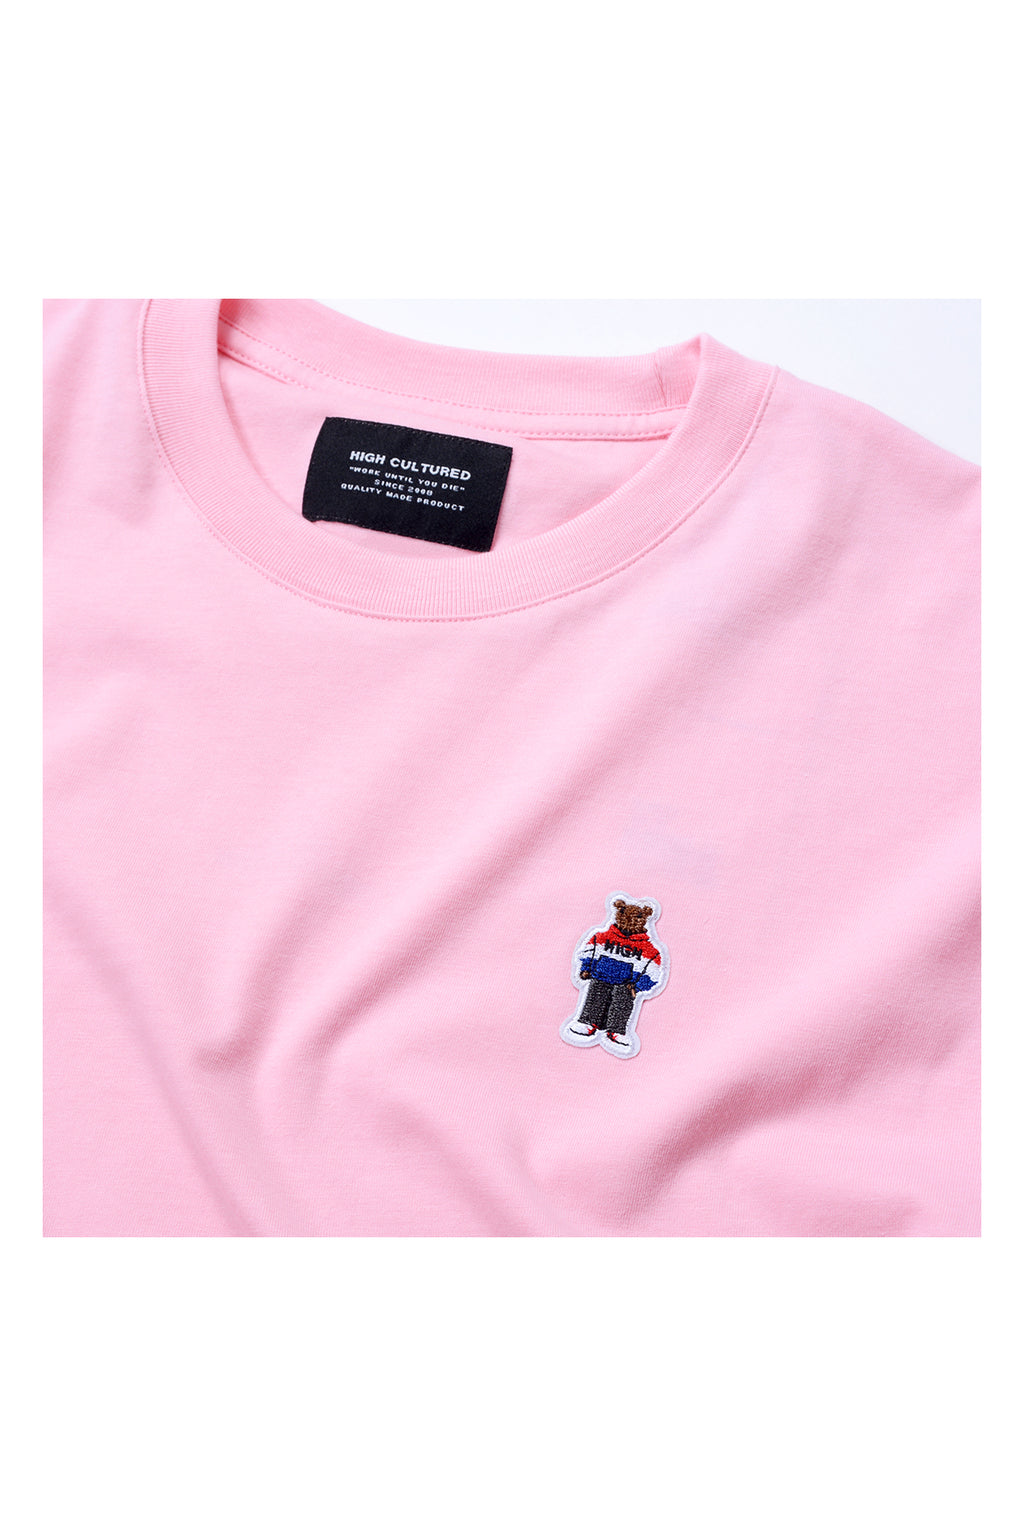 ORDINARY BEAR EMBROIDERED PATCH OVERSIZED TEE | PINK - 770